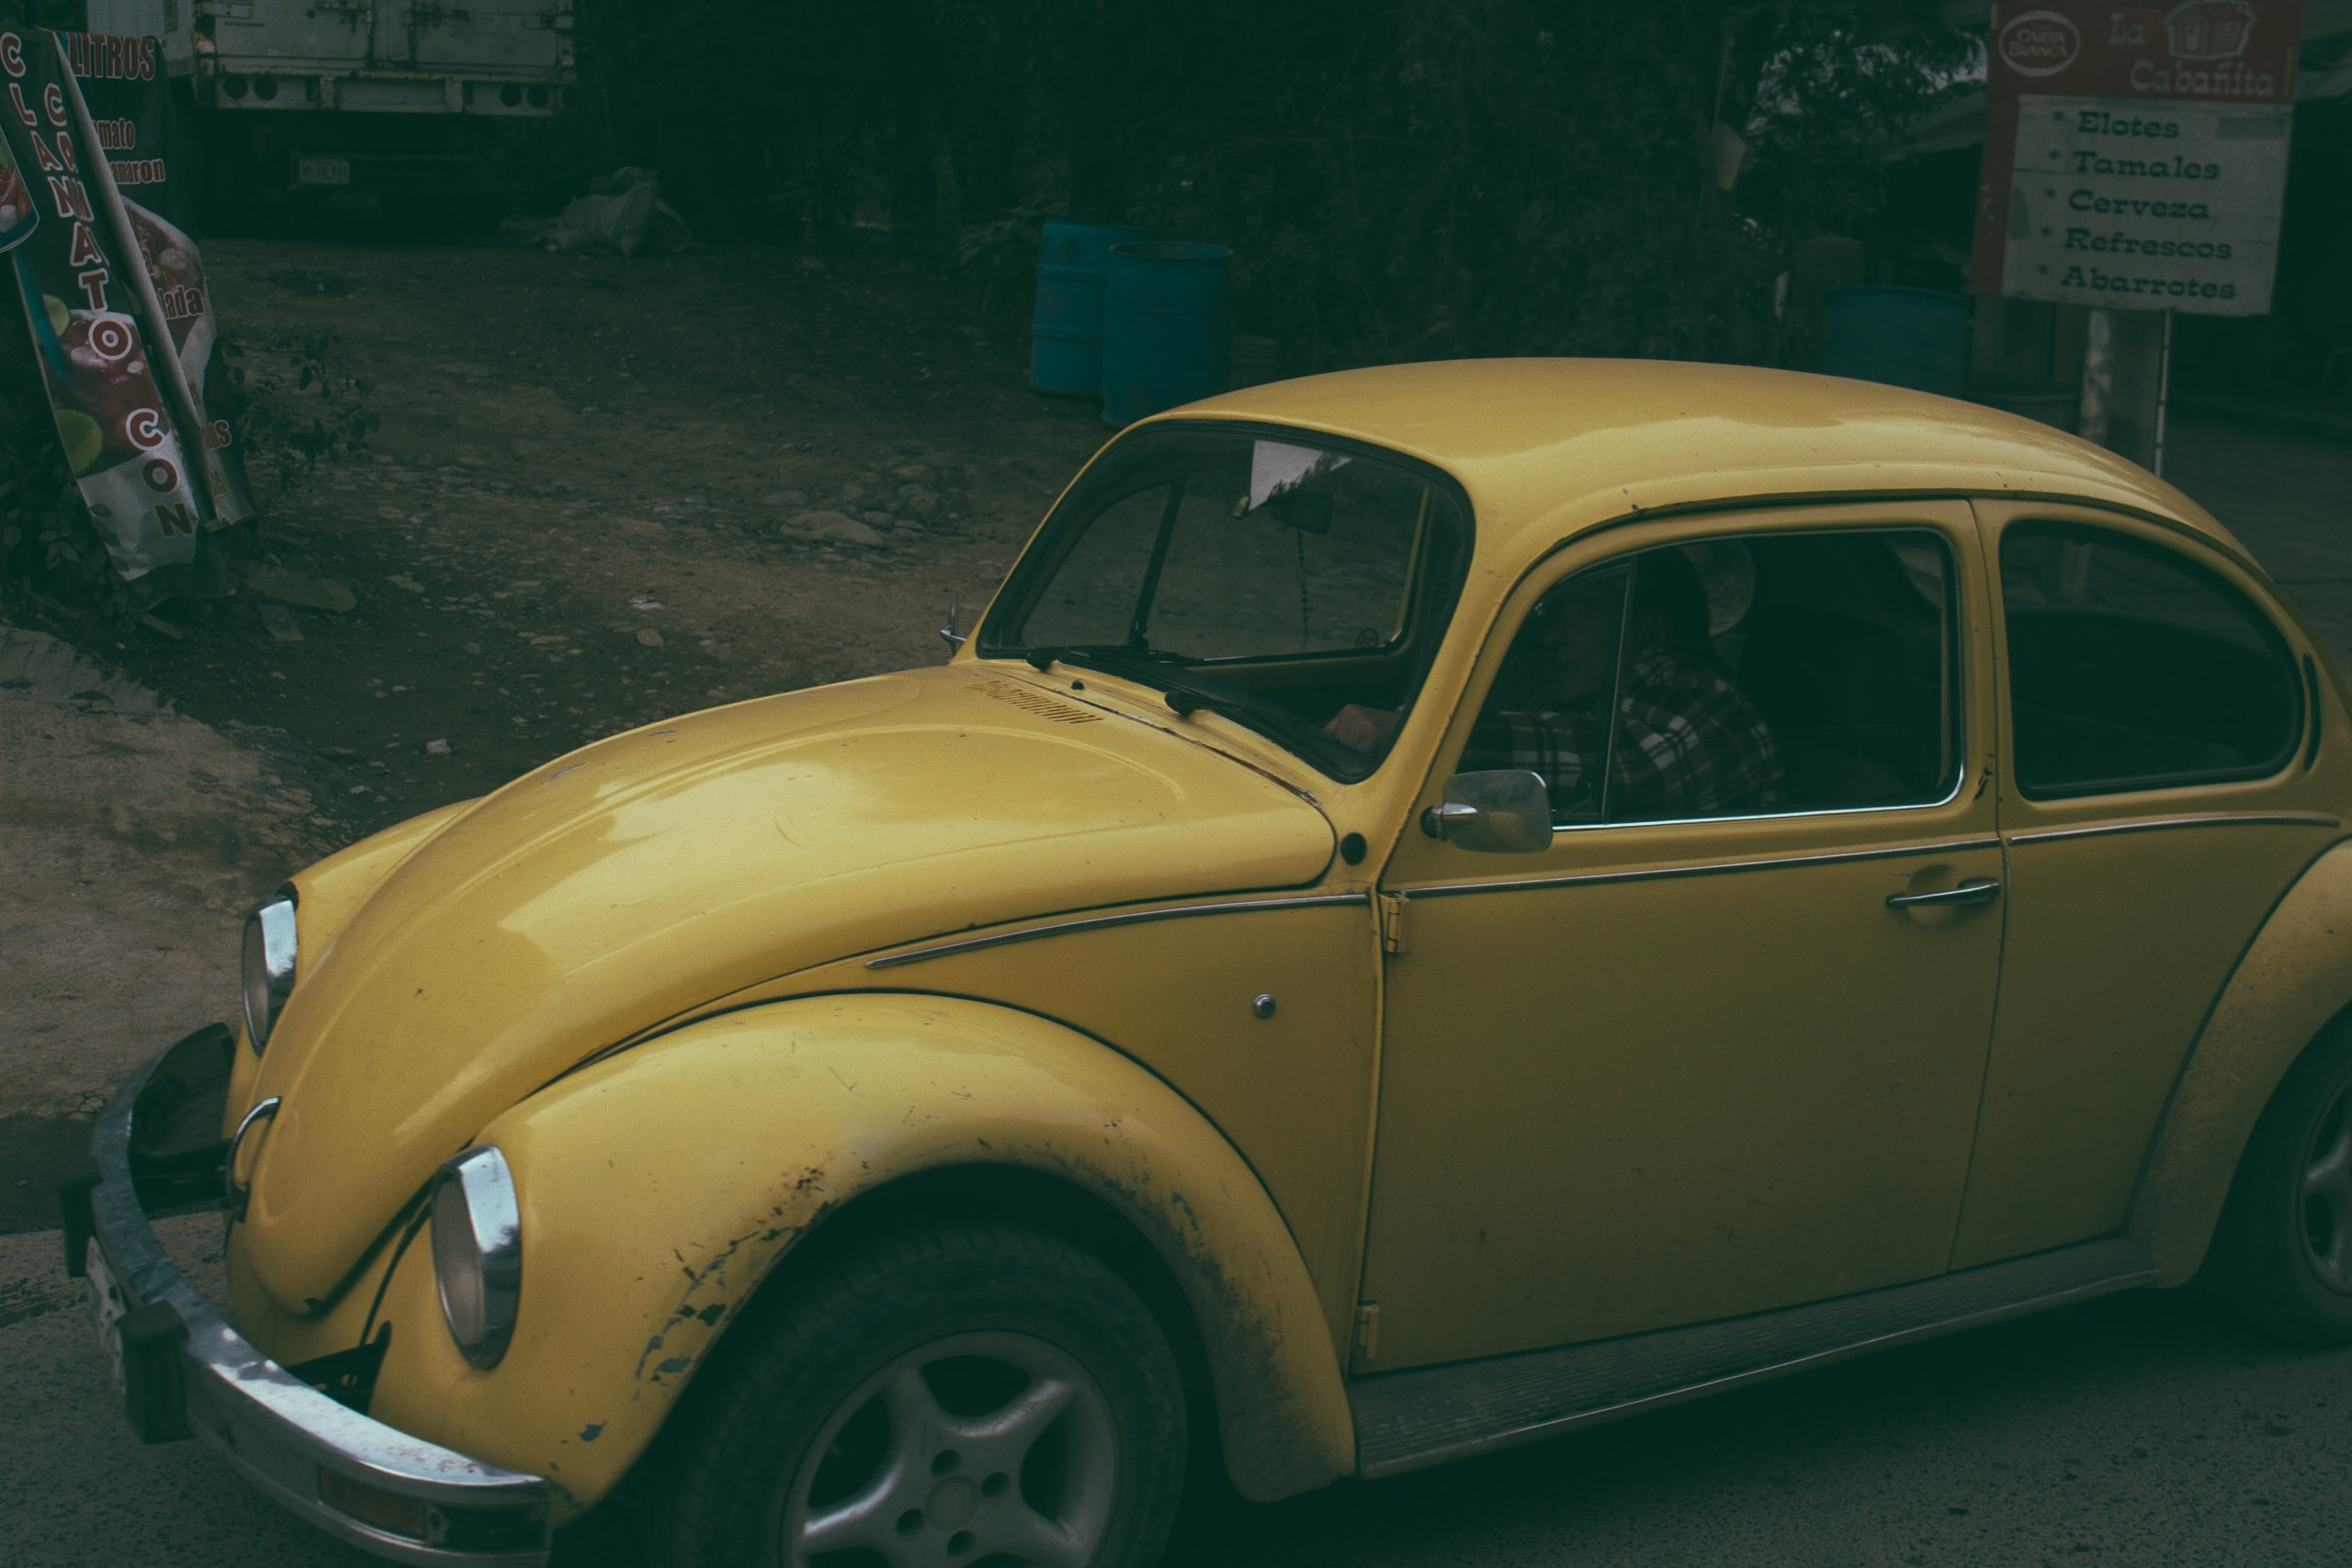 Underexposed shot of a vintage yellow Volkswagen Beetle.